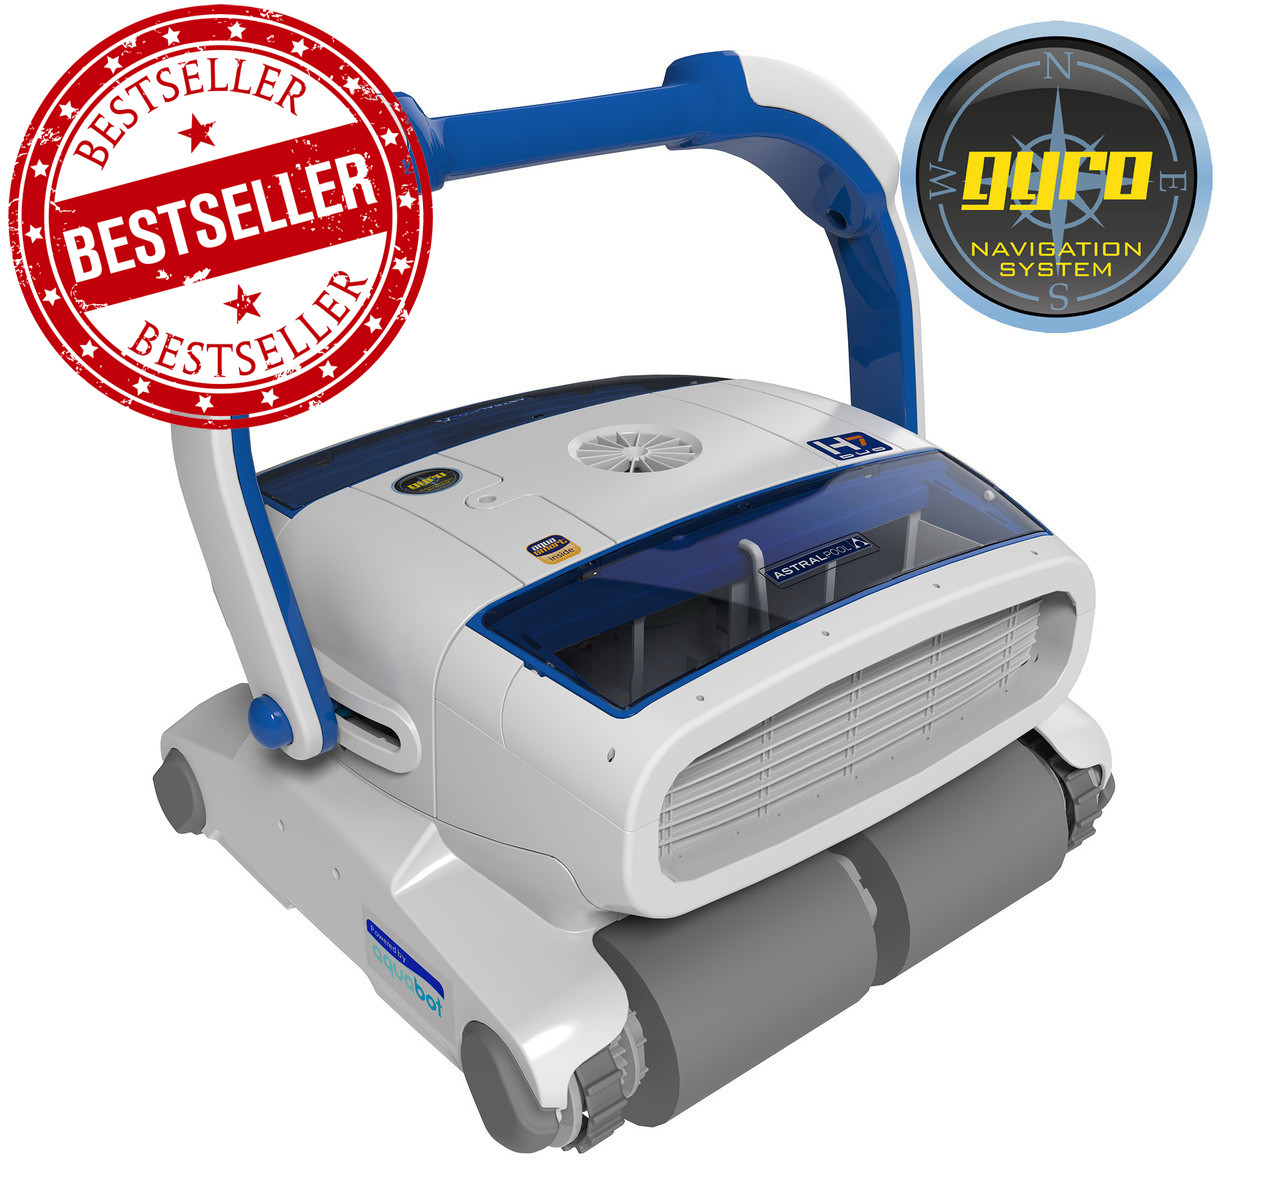 Astral H5 Robotic Pool cleaner